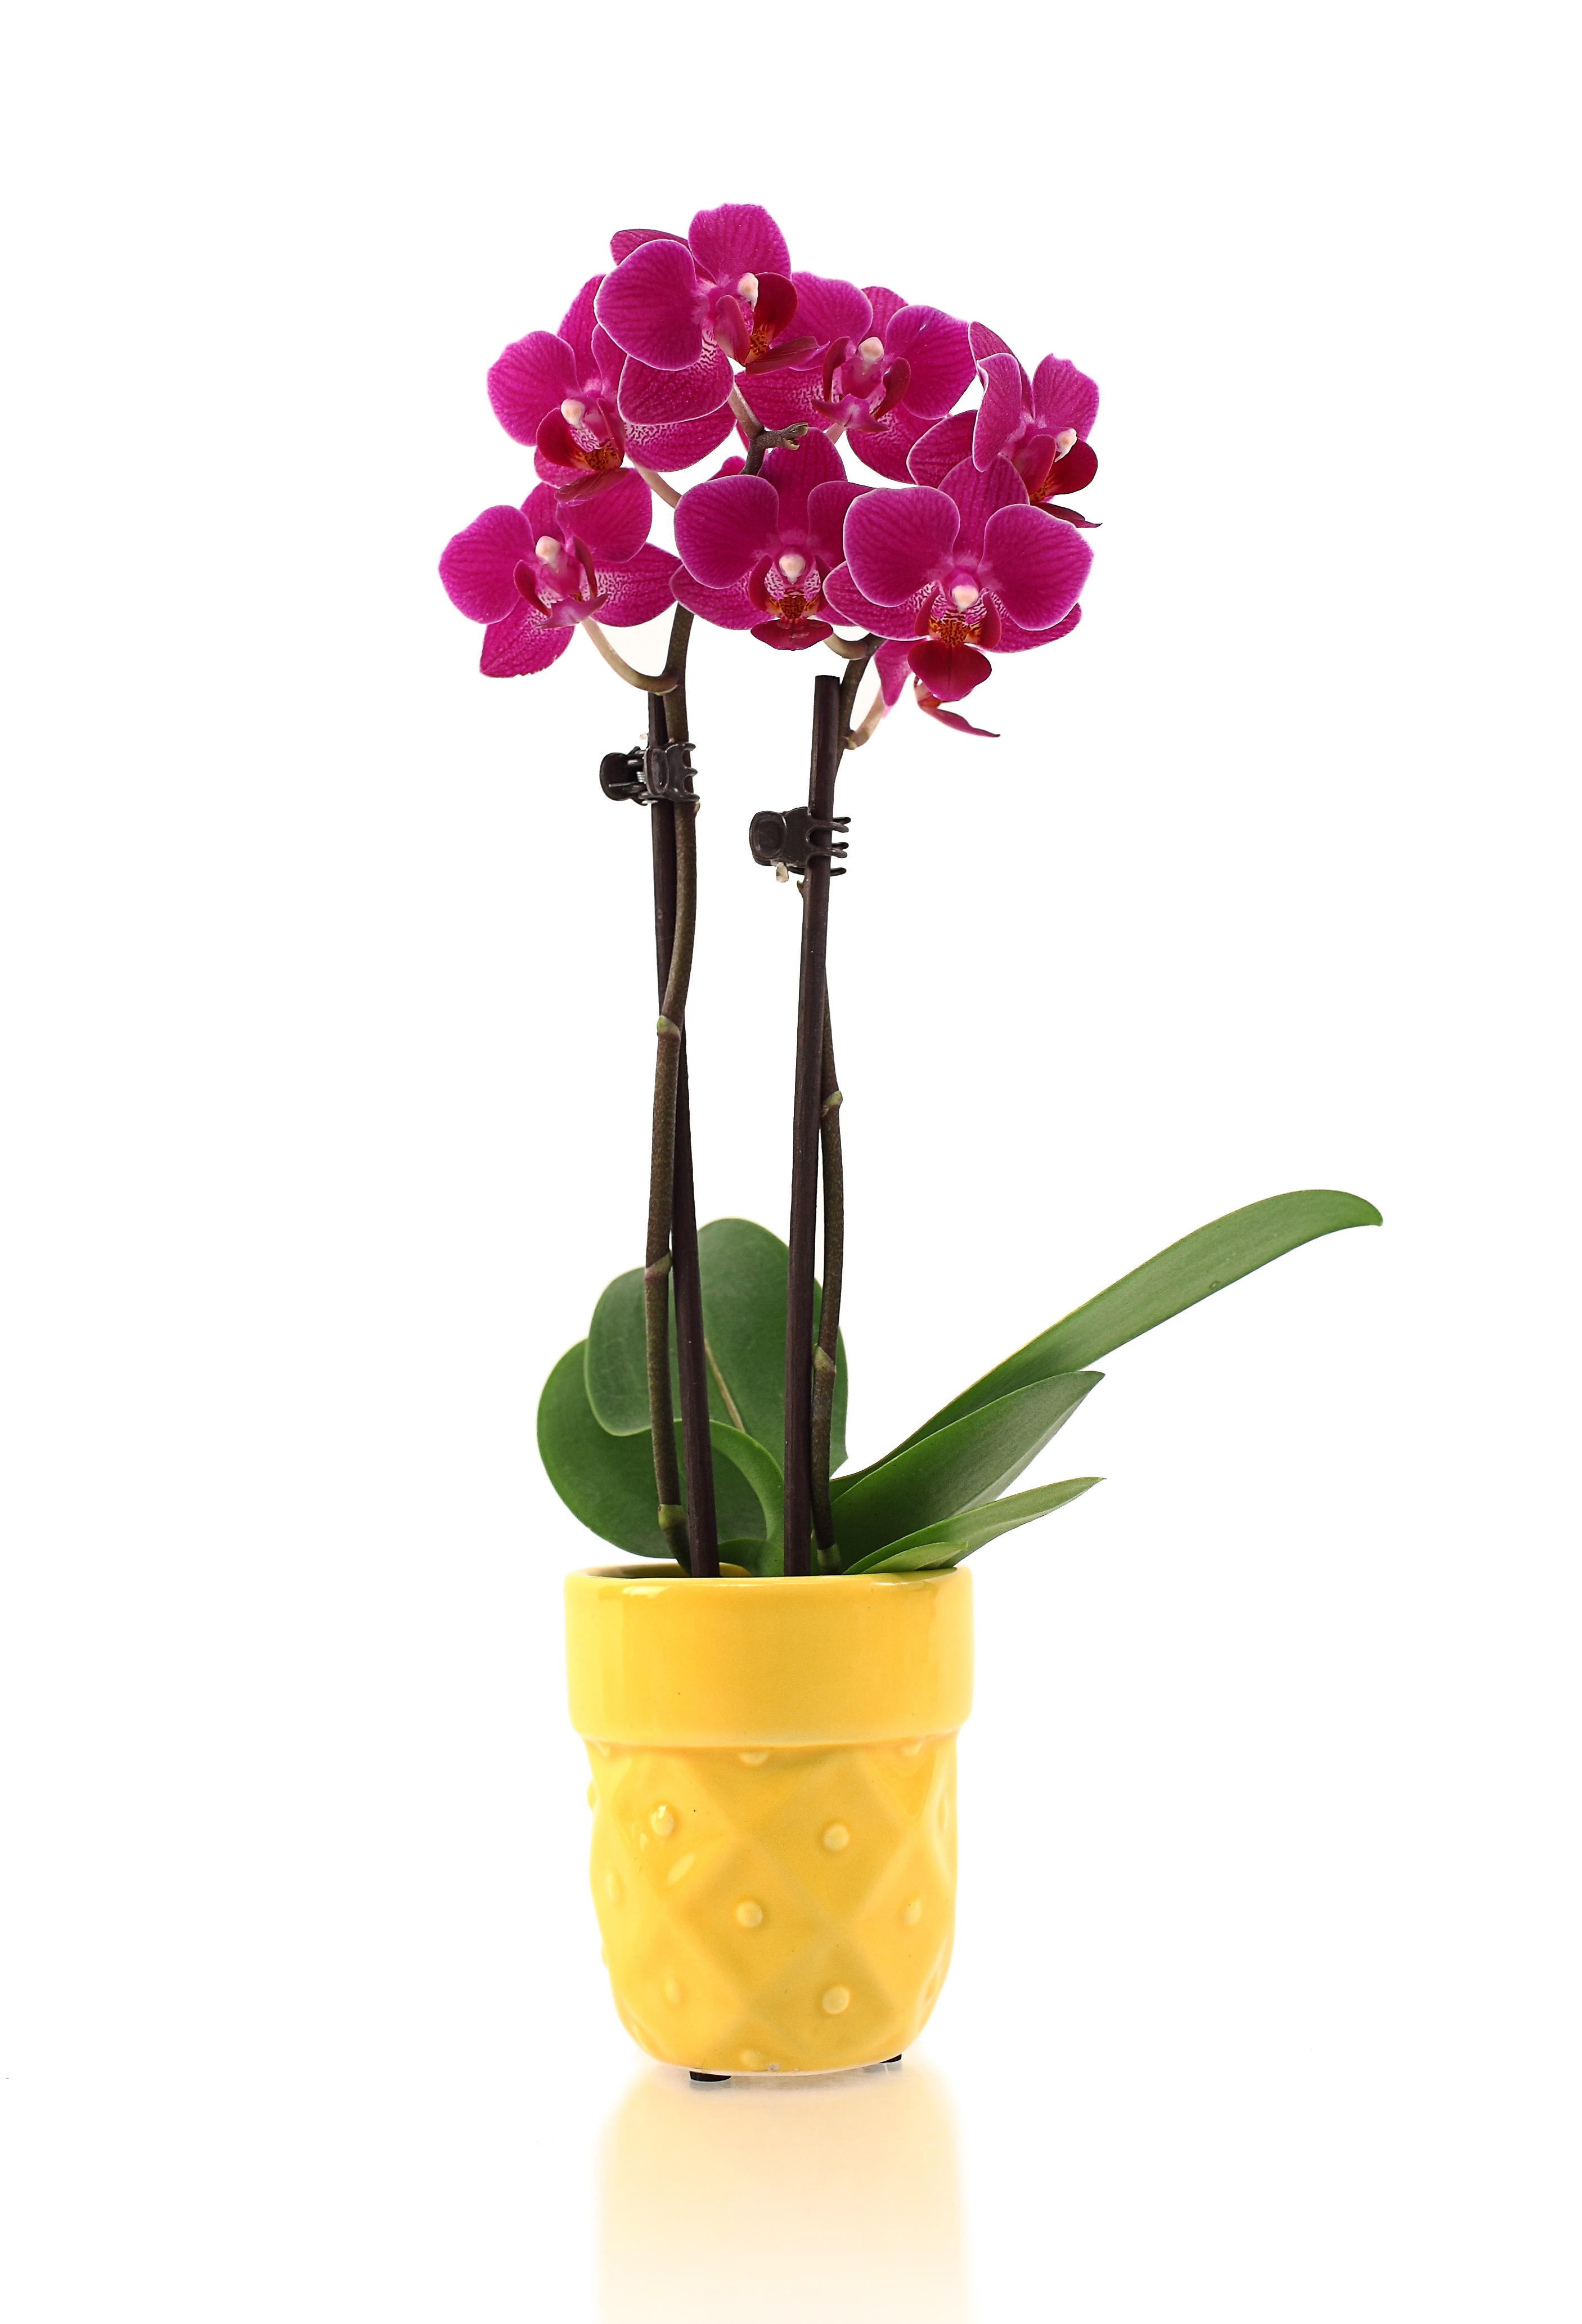 Watering Orchid Minis Orchid Care Just Add Ice Orchids